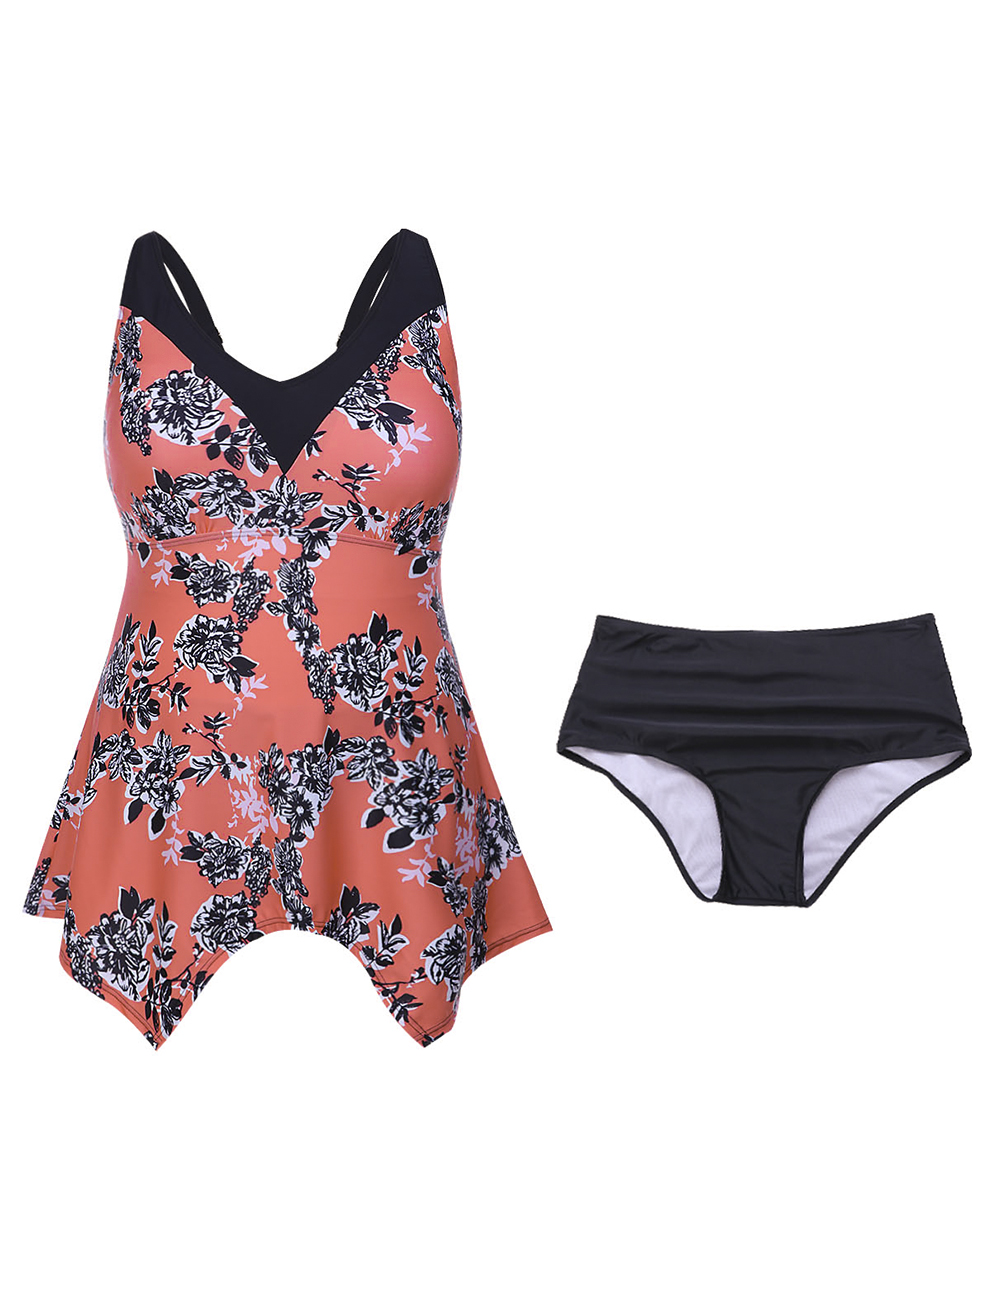 //cdn.affectcloud.com/hexinfashion/upload/imgs/Swimwear/One_Piece_Swimwear/LB16038410D/LB16038410D-201911055dc131db7a15d.jpg